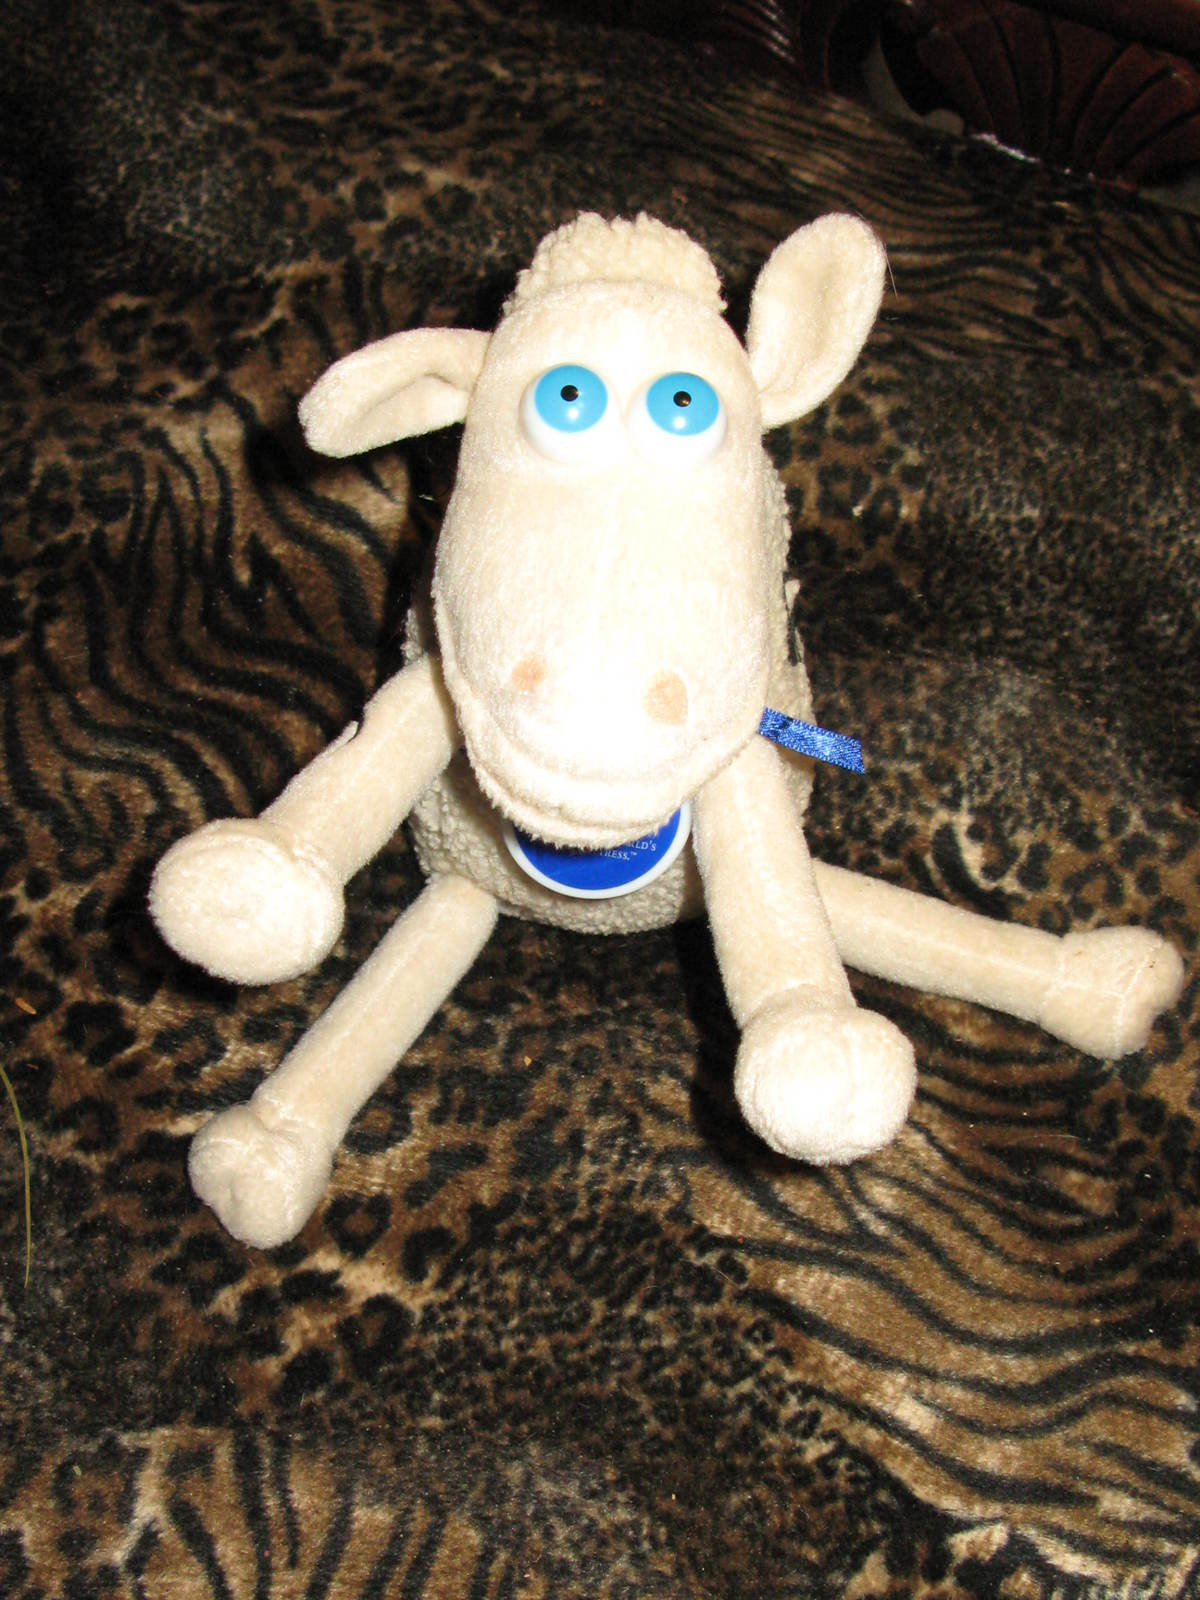 Primary image for Serta Collectible Push Sheep (55 MPH) Counting Sheep 2000